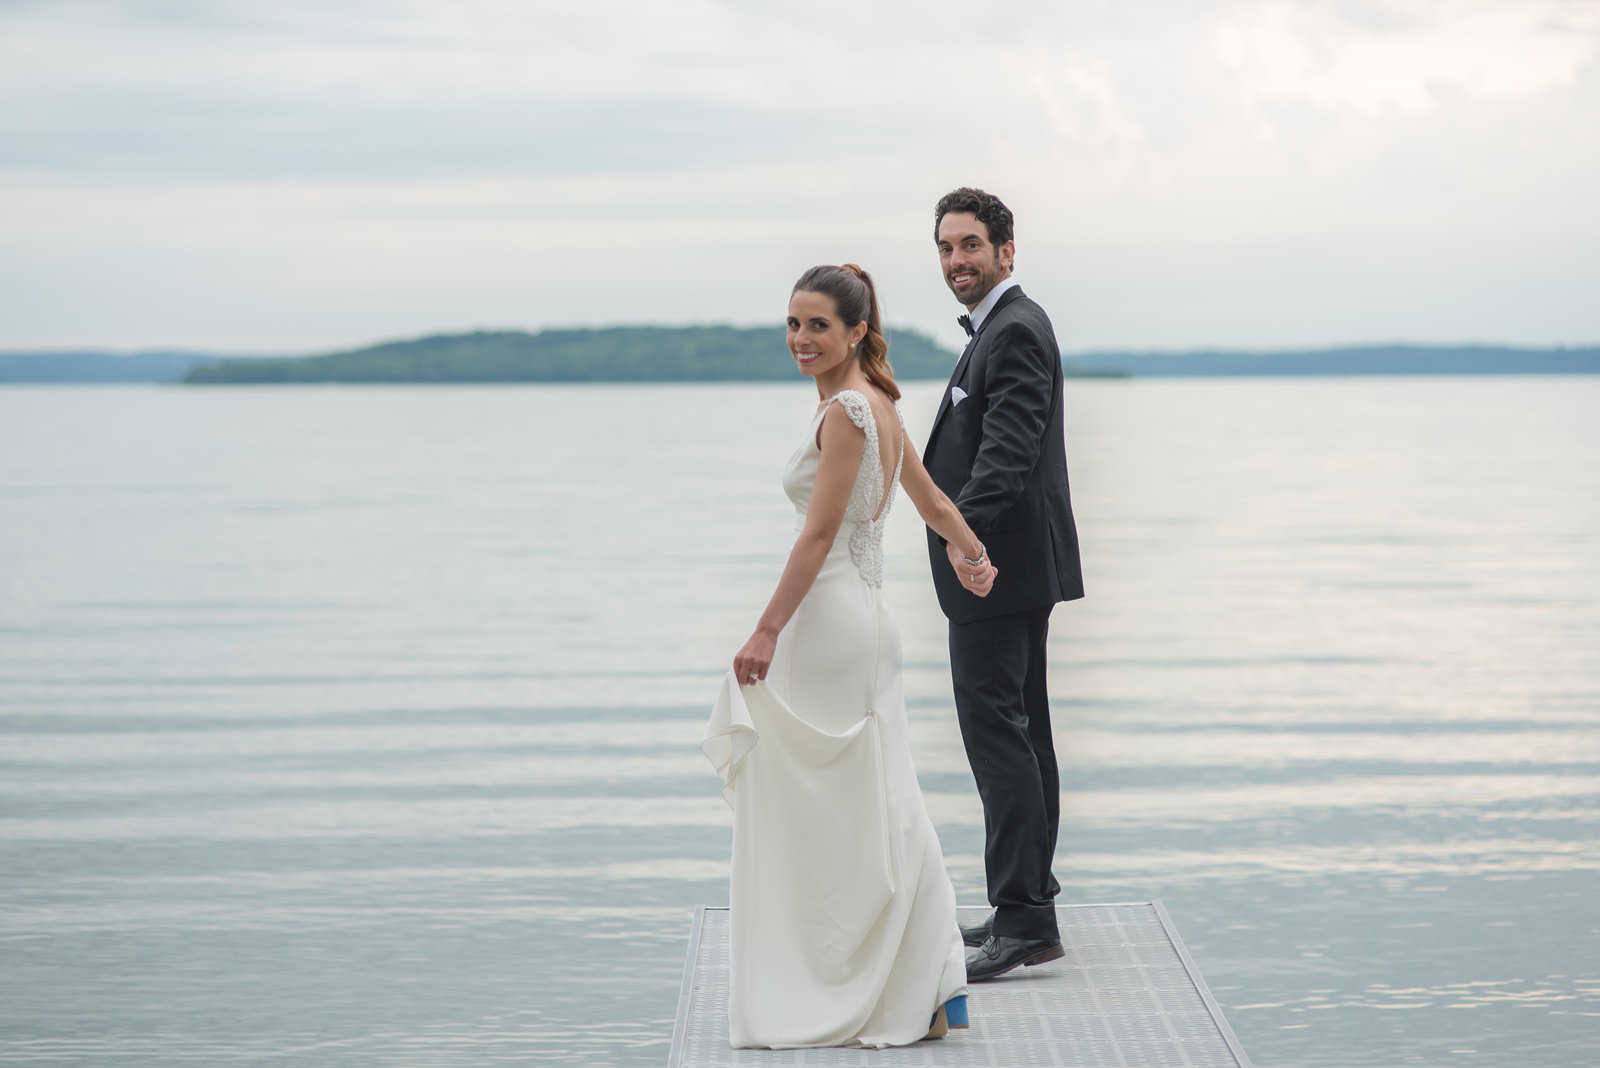 candid and beautiful wedding photography, traverse city michigan